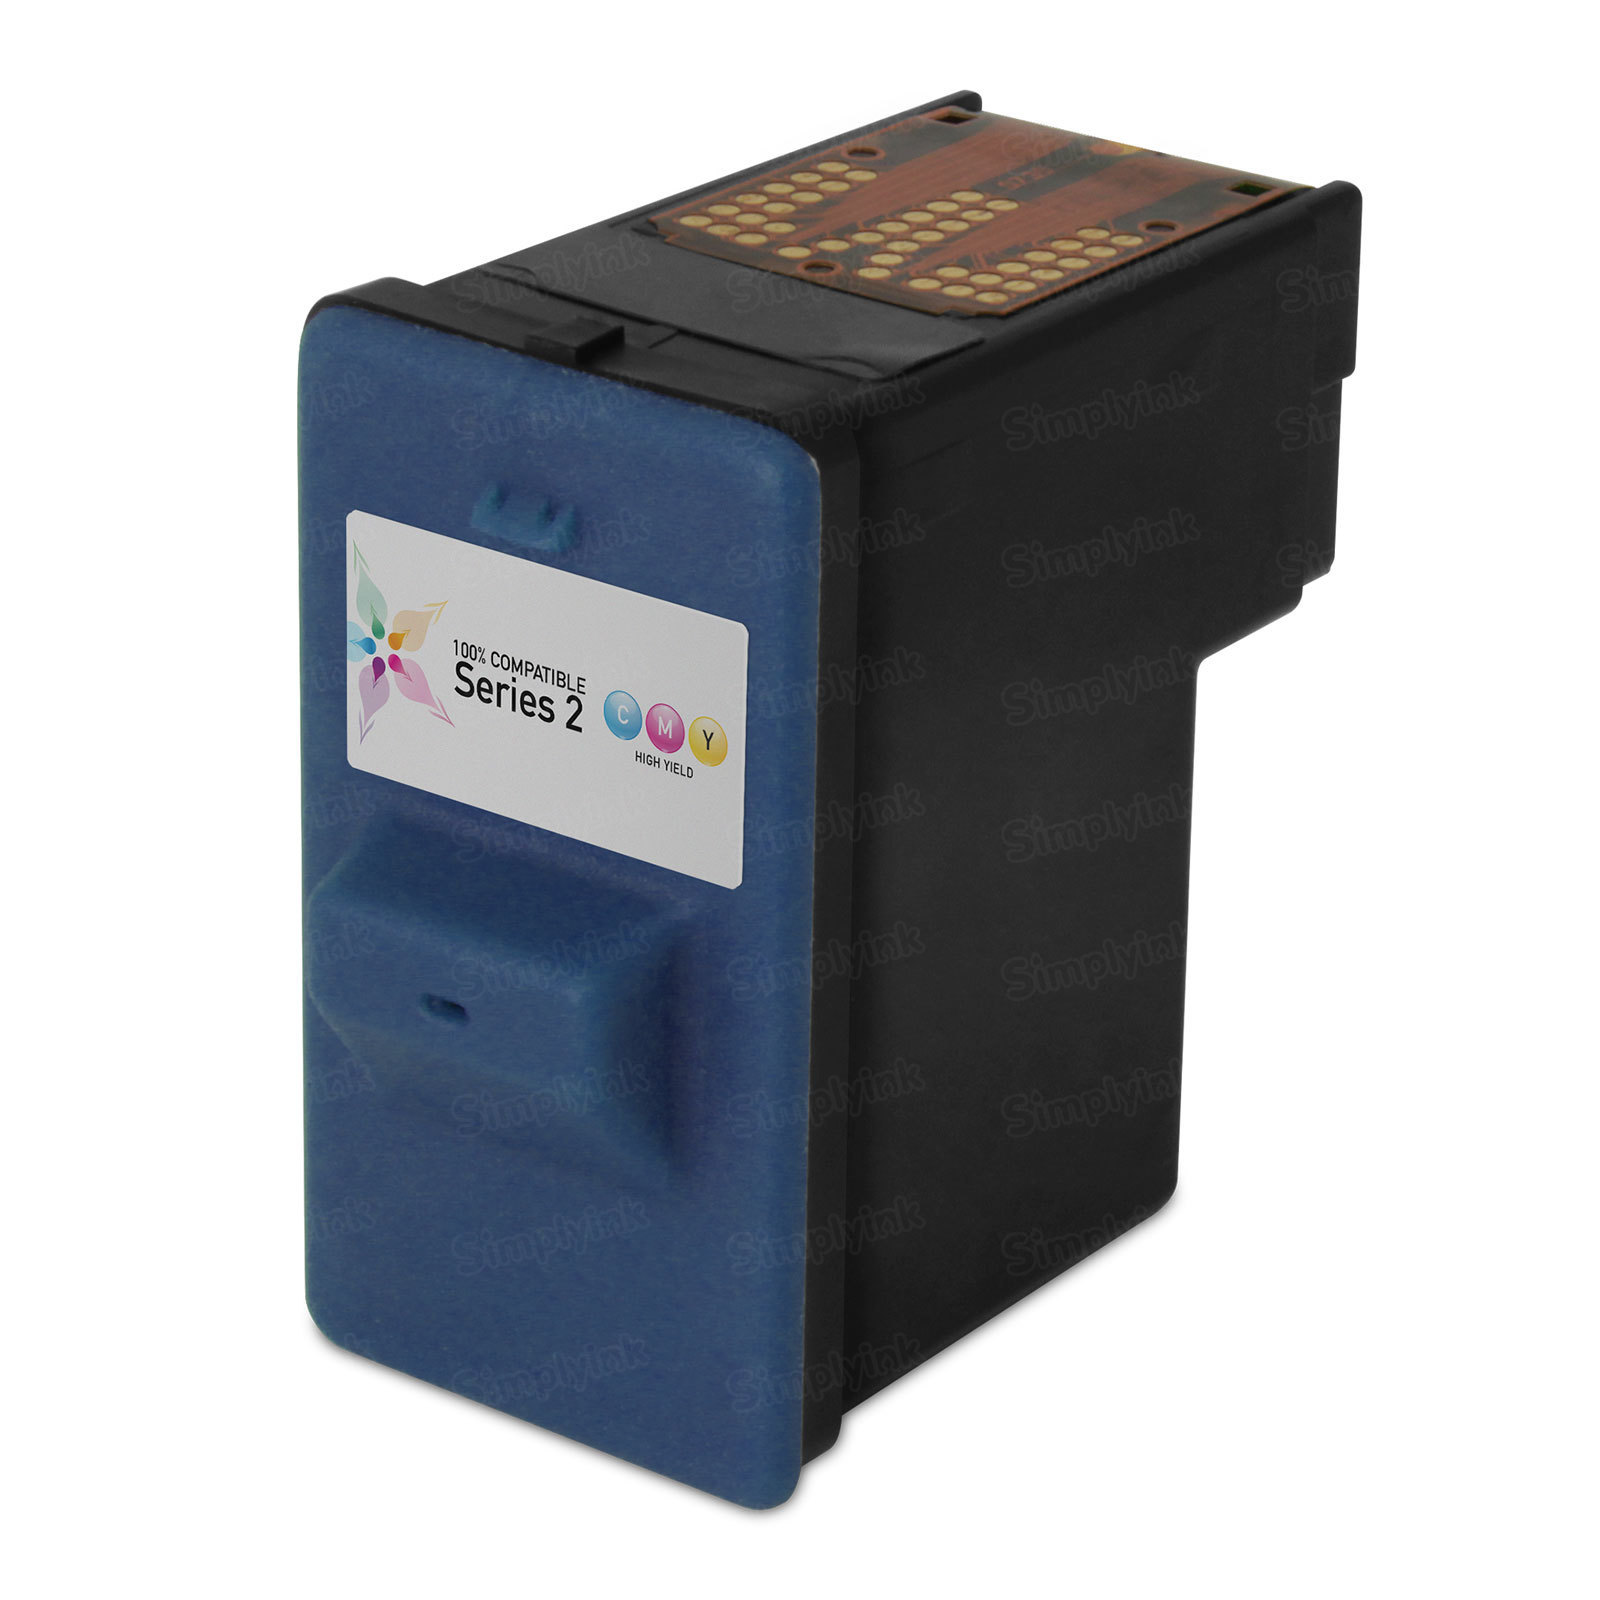 Remanufactured Ink Cartridge for Dell 7Y745 Color Series 2